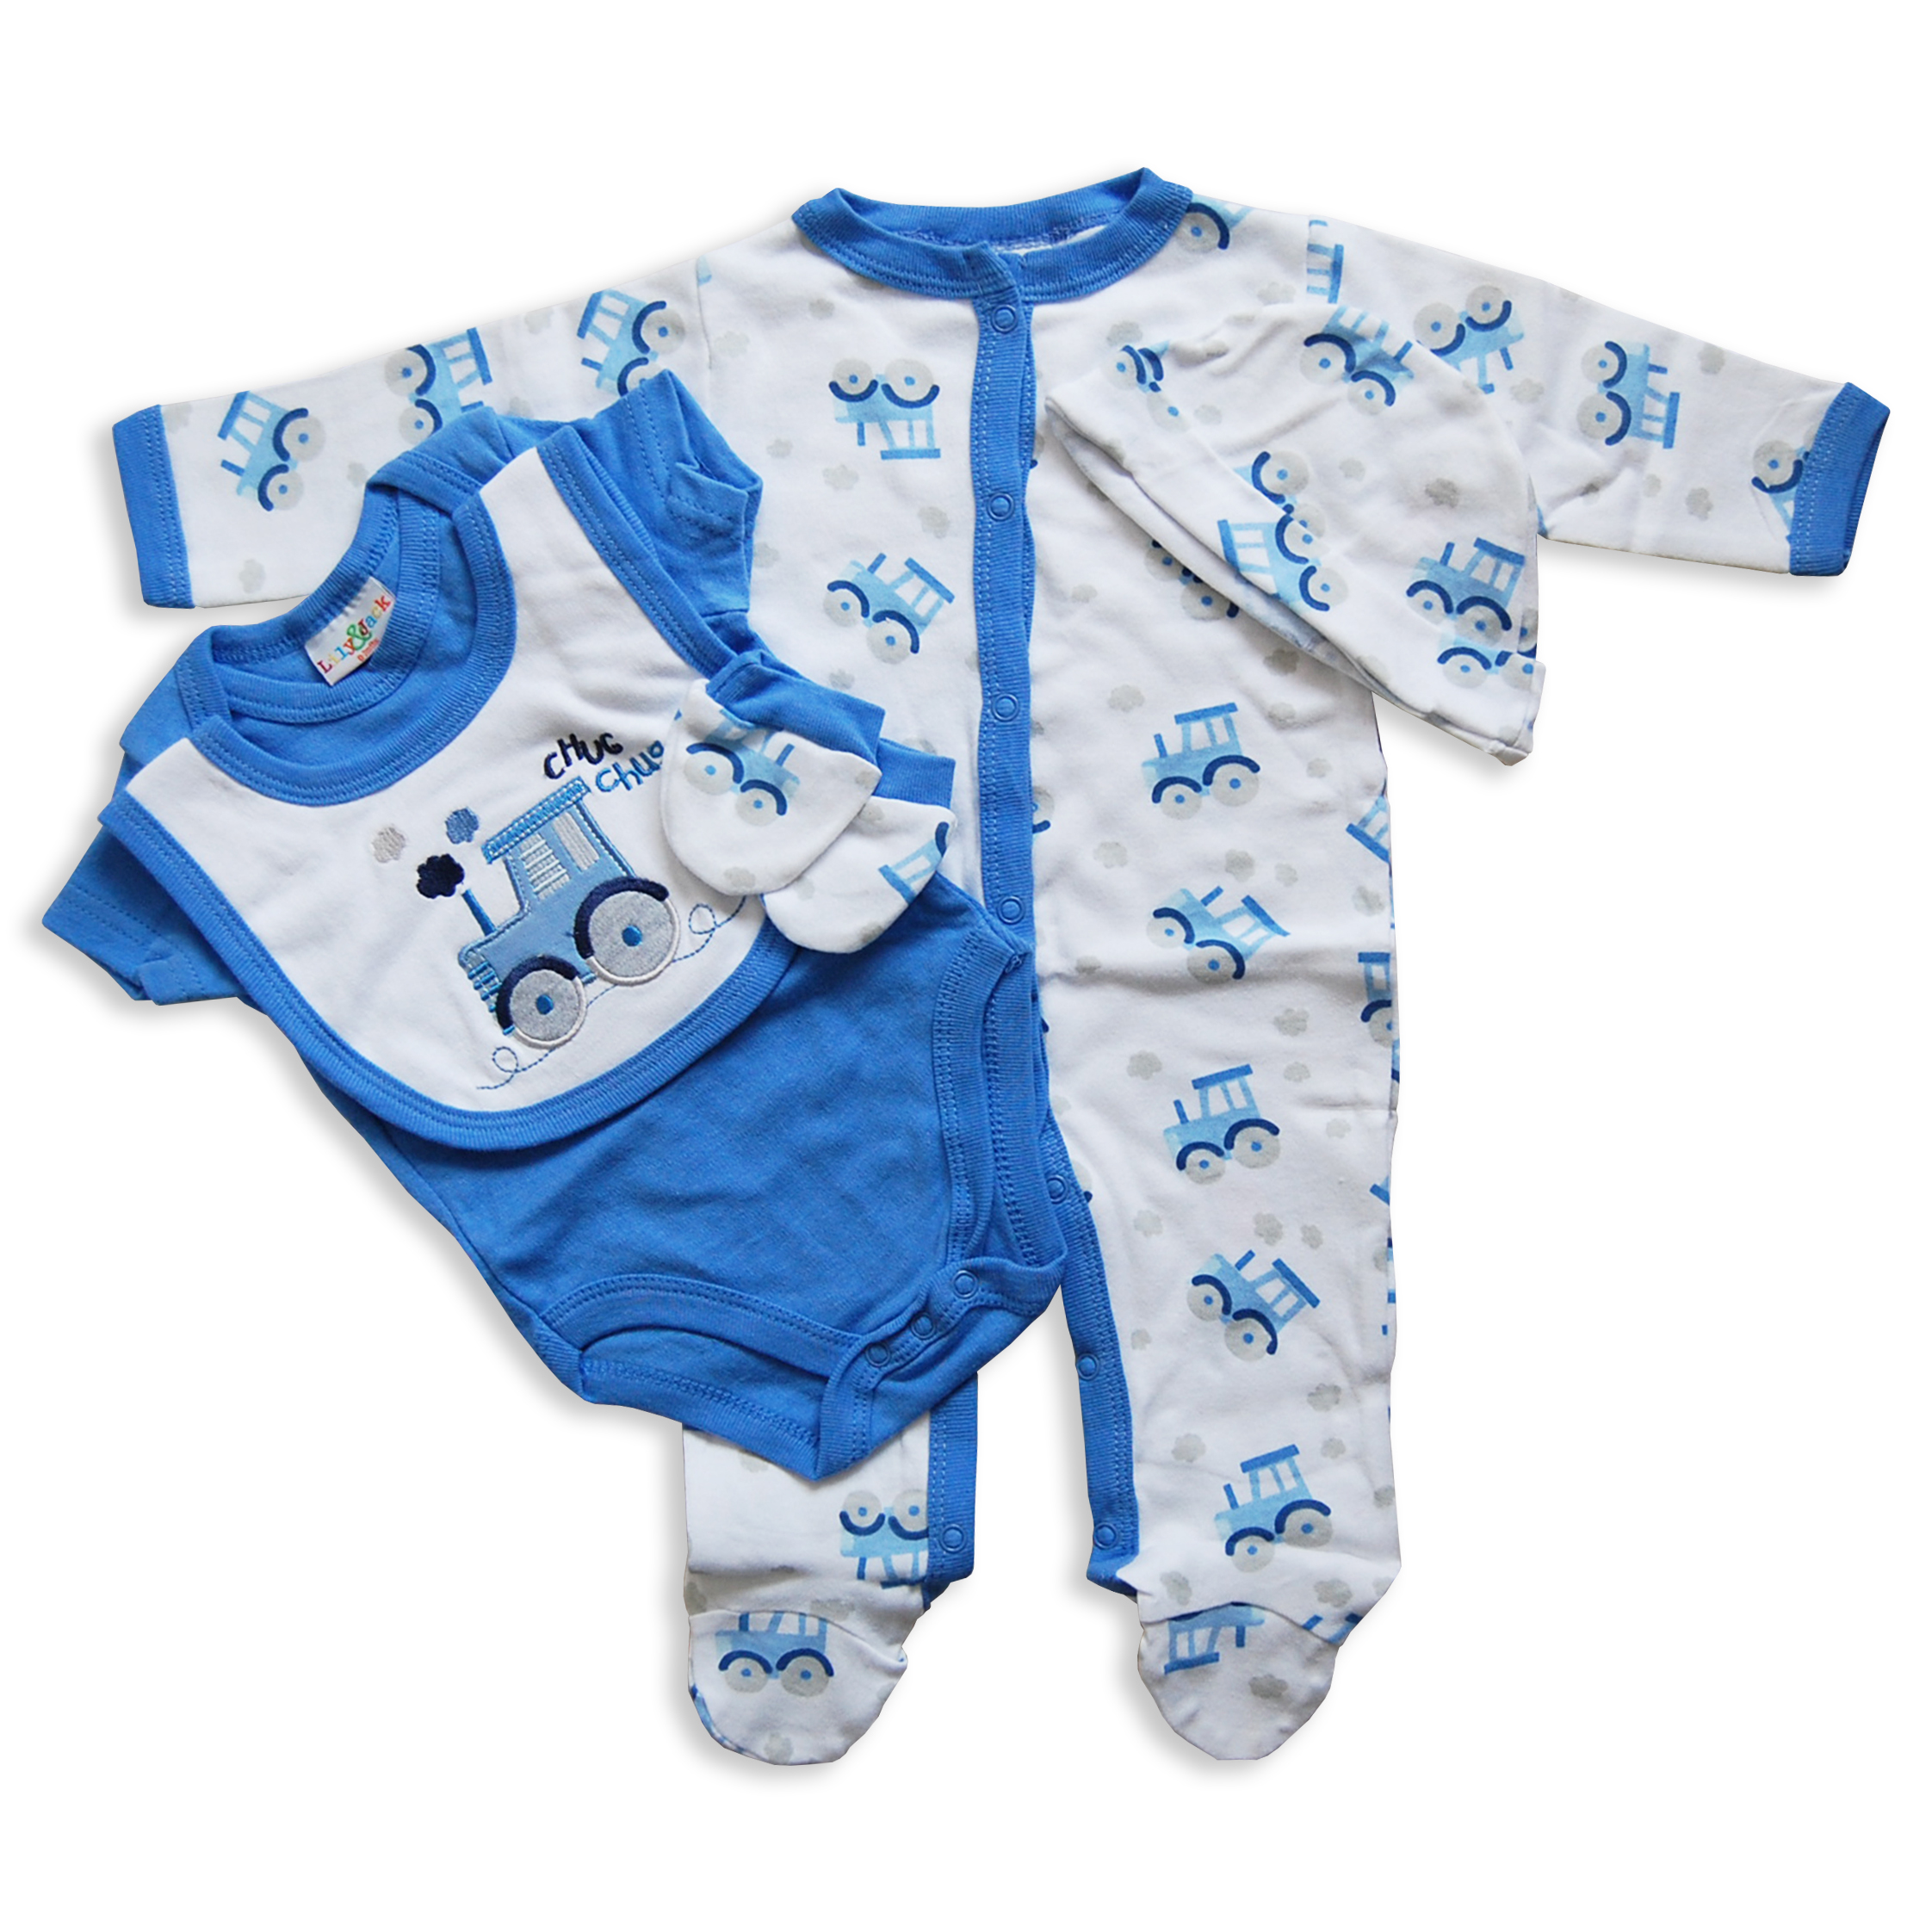 5 Piece Baby Boys Girls Layette Clothing Gift Set Box by